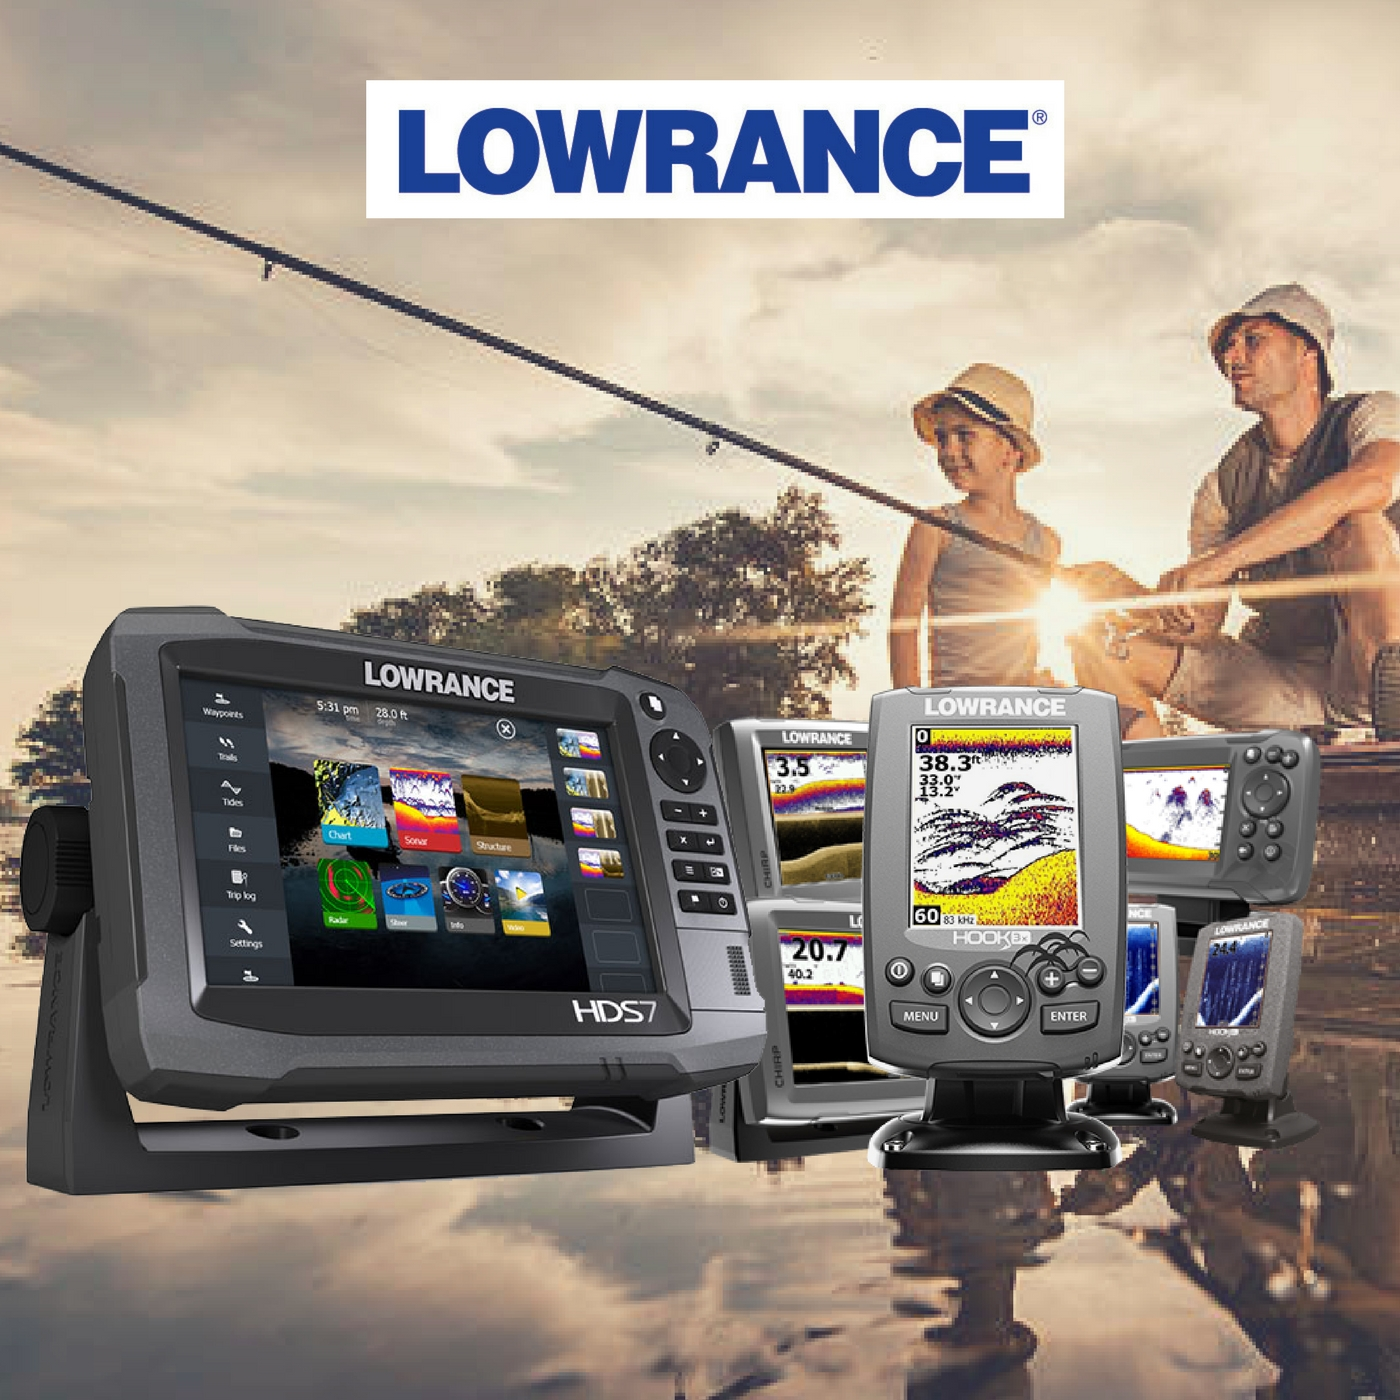 Lowrance Fish Finder Brands